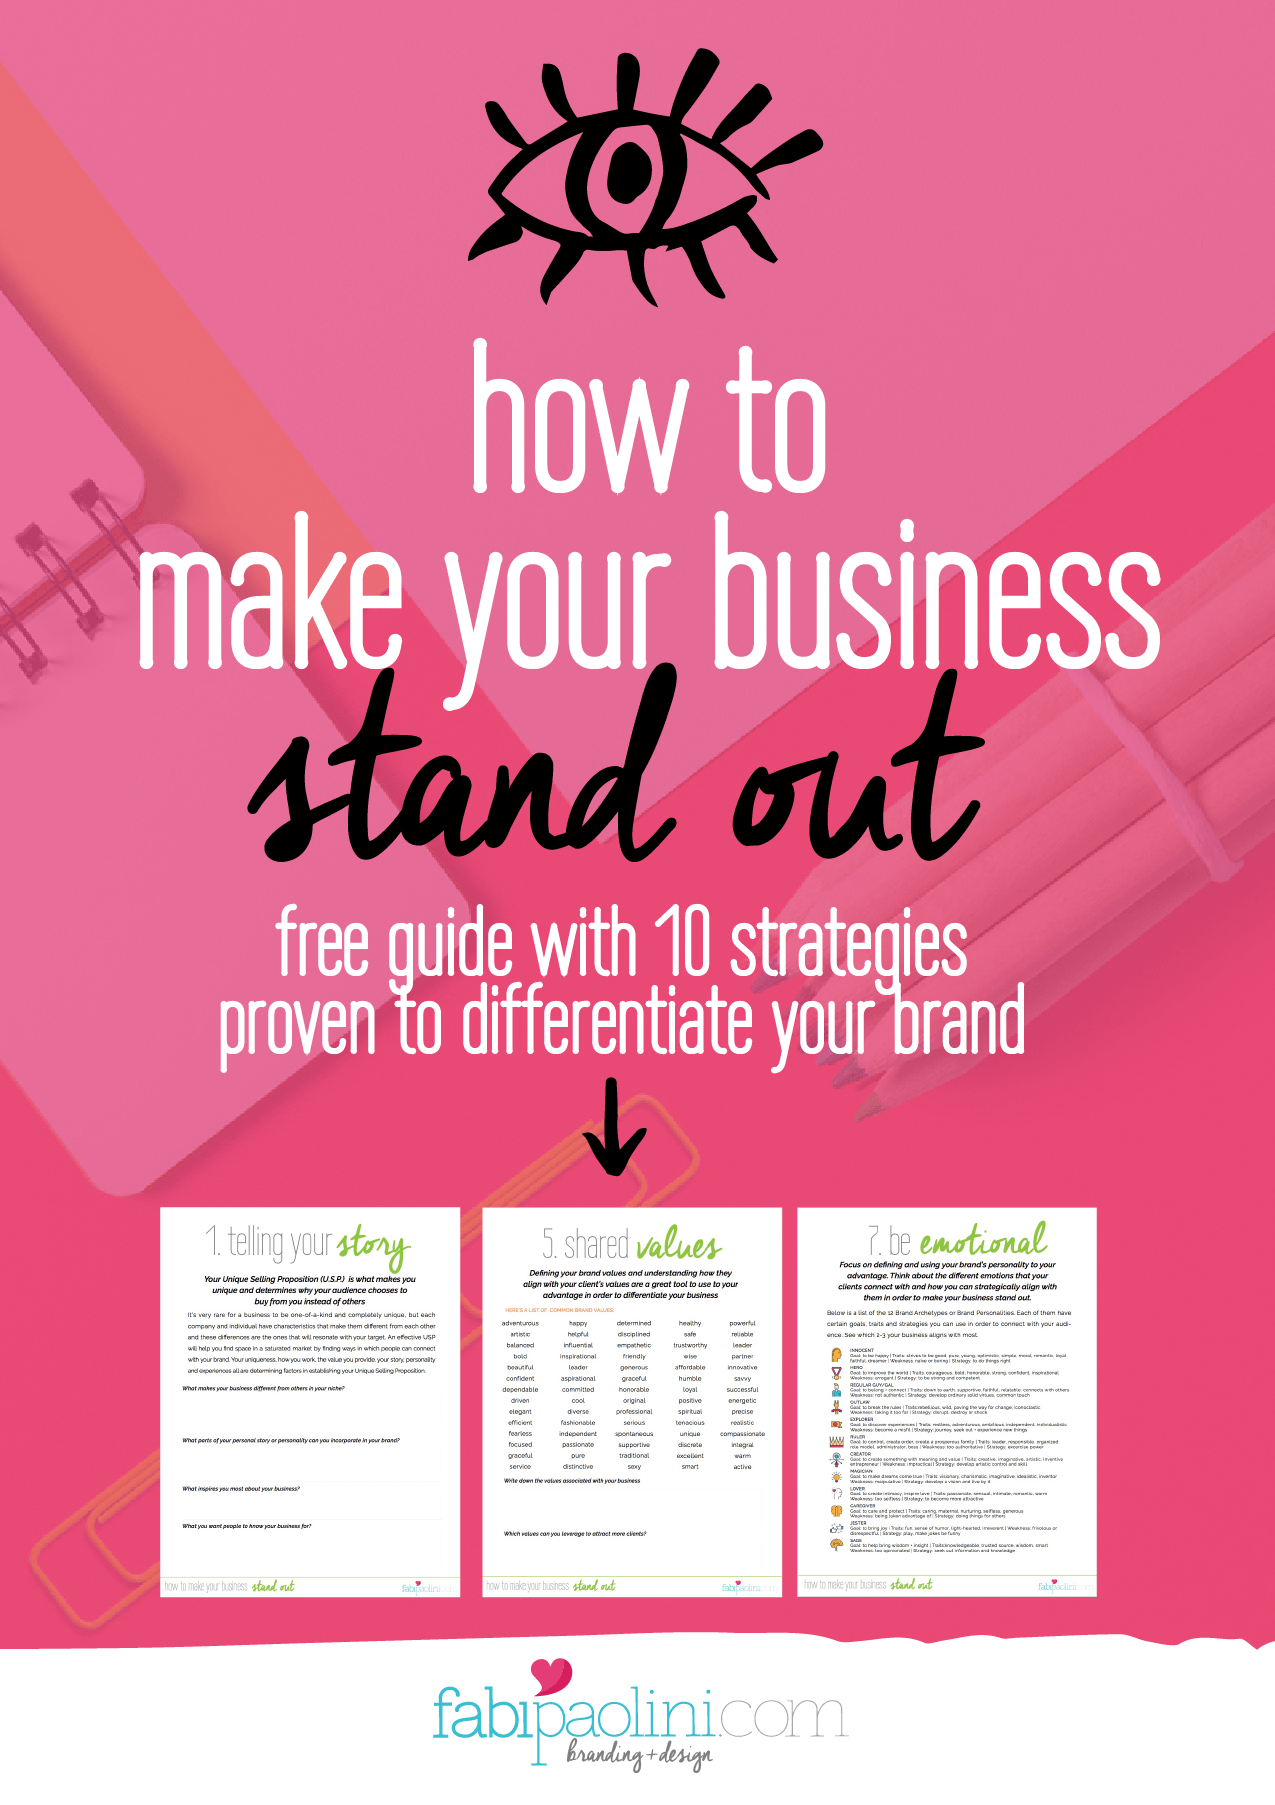 How to make your business stand out. Brand differentiation. Branding, entrepreneur. Guide with 10 strategies proven to make your business stand out and differentiate your brand